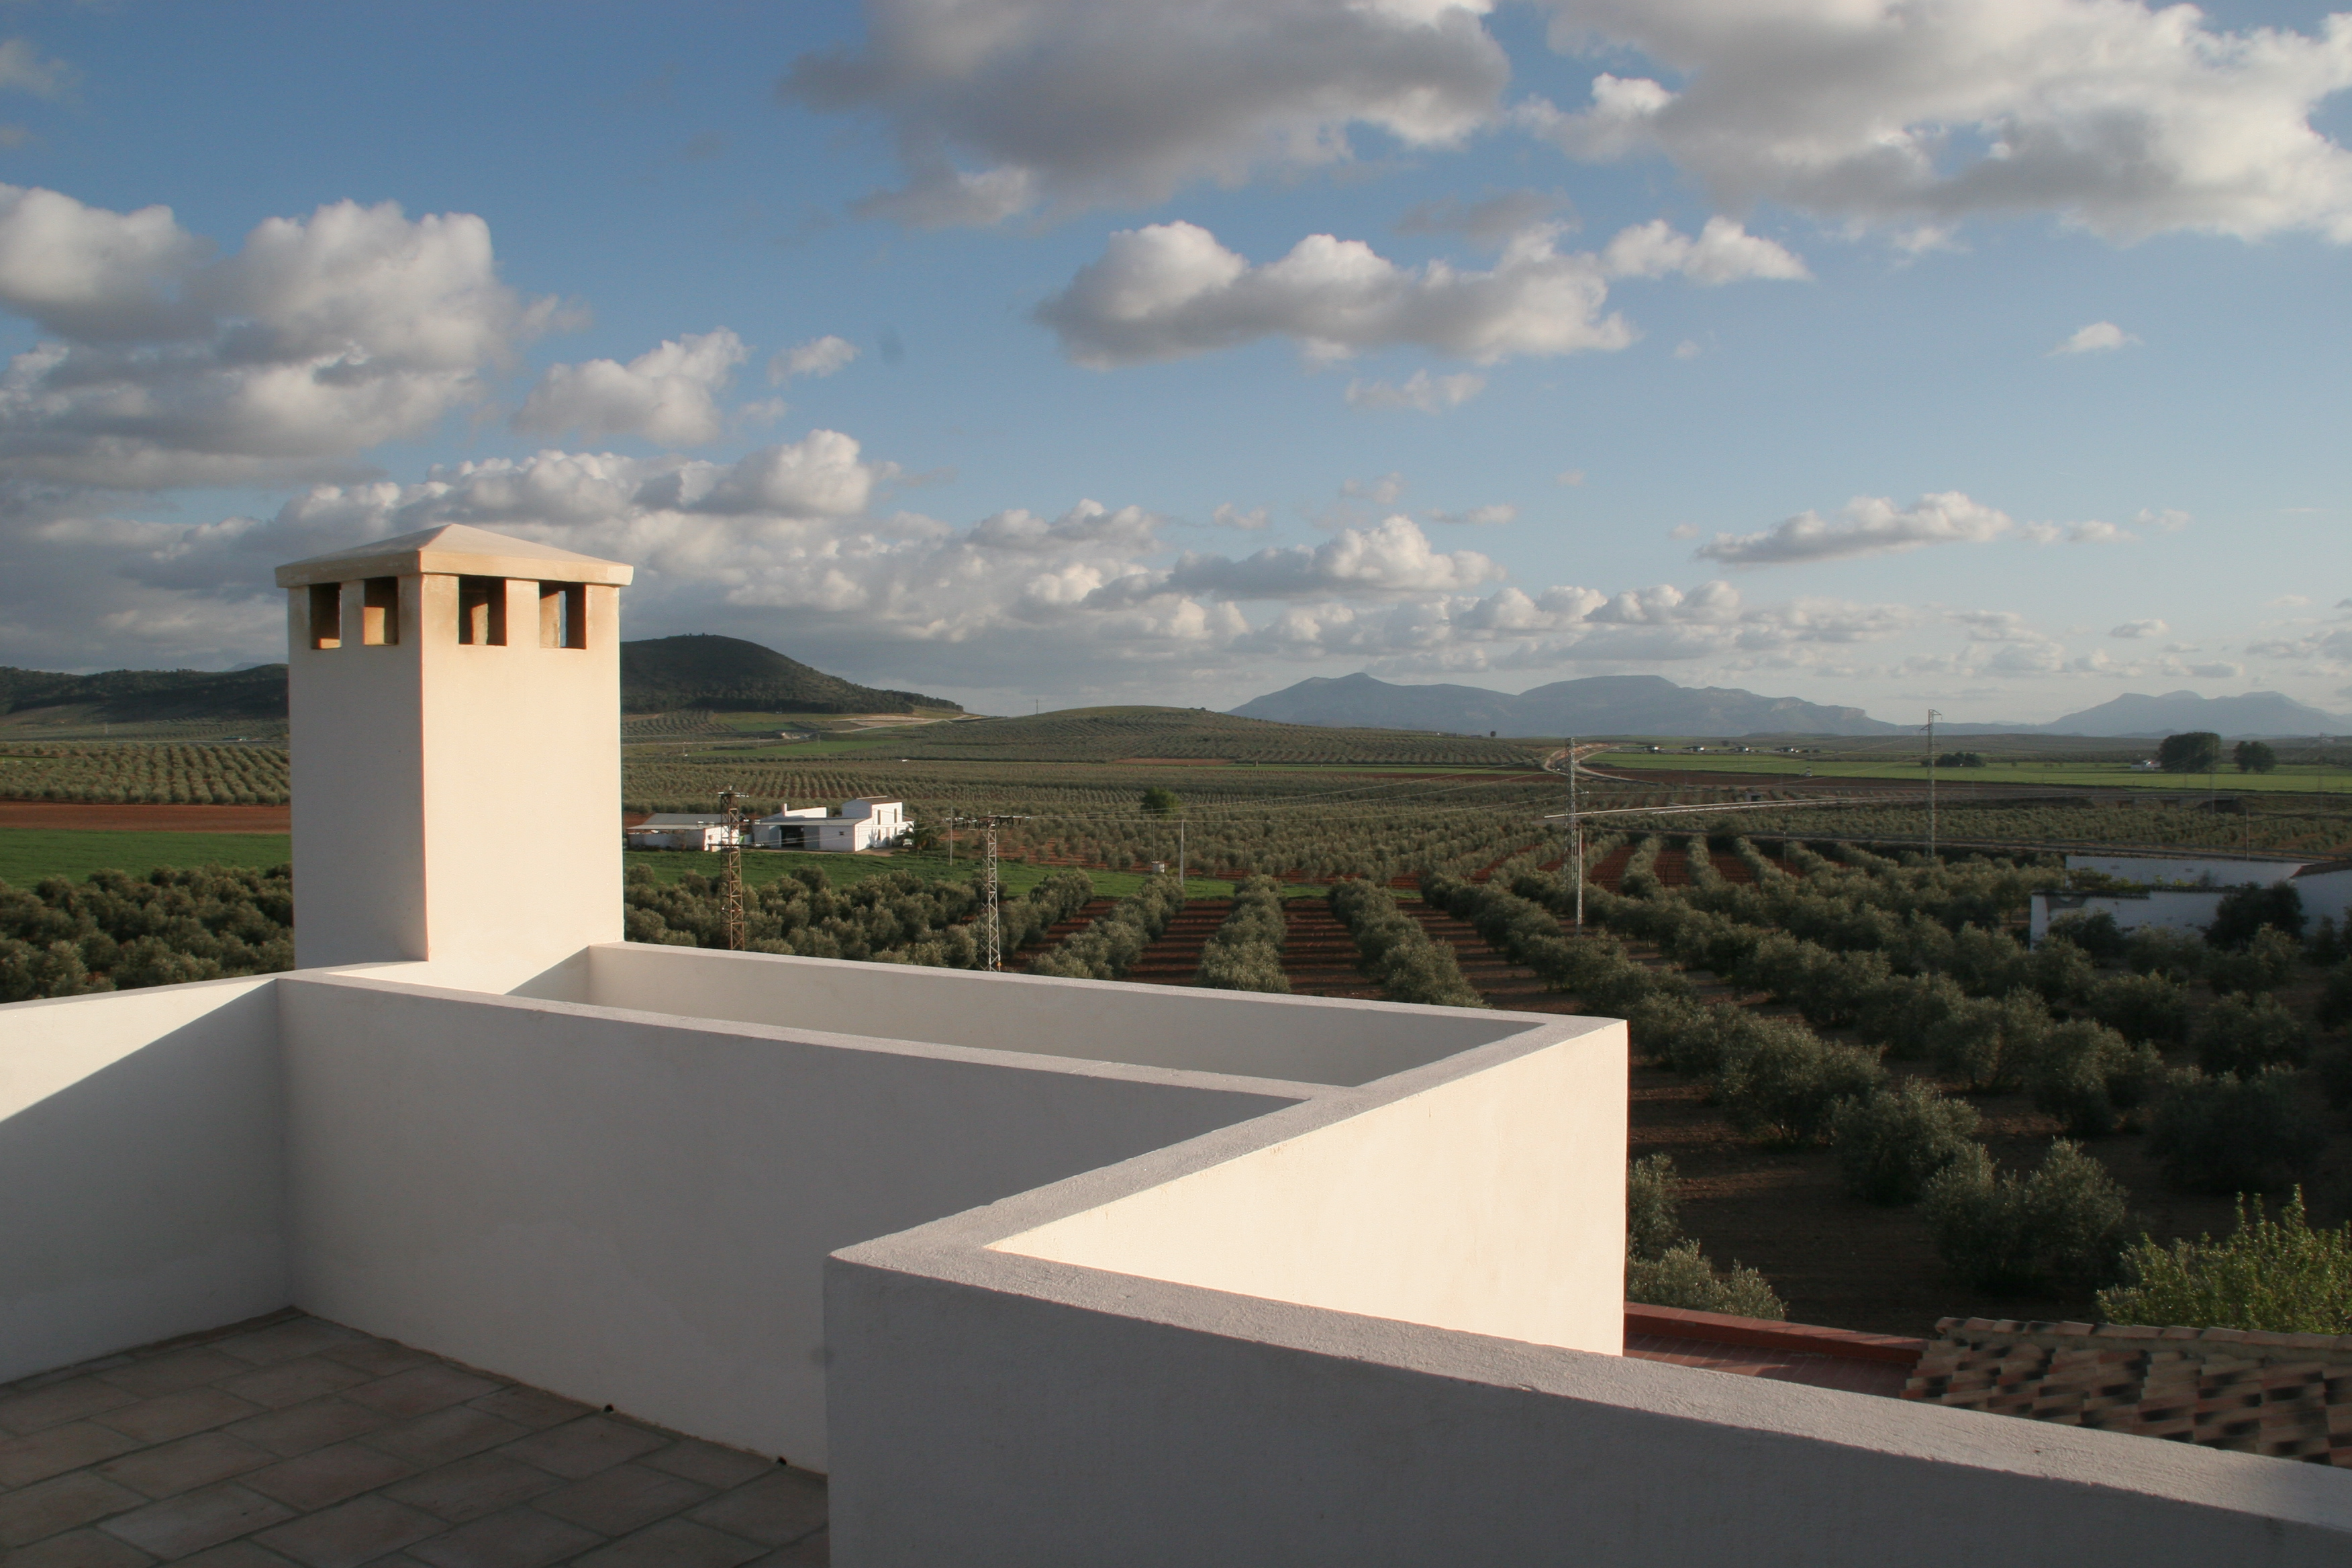 Roof Deck View towards the olives